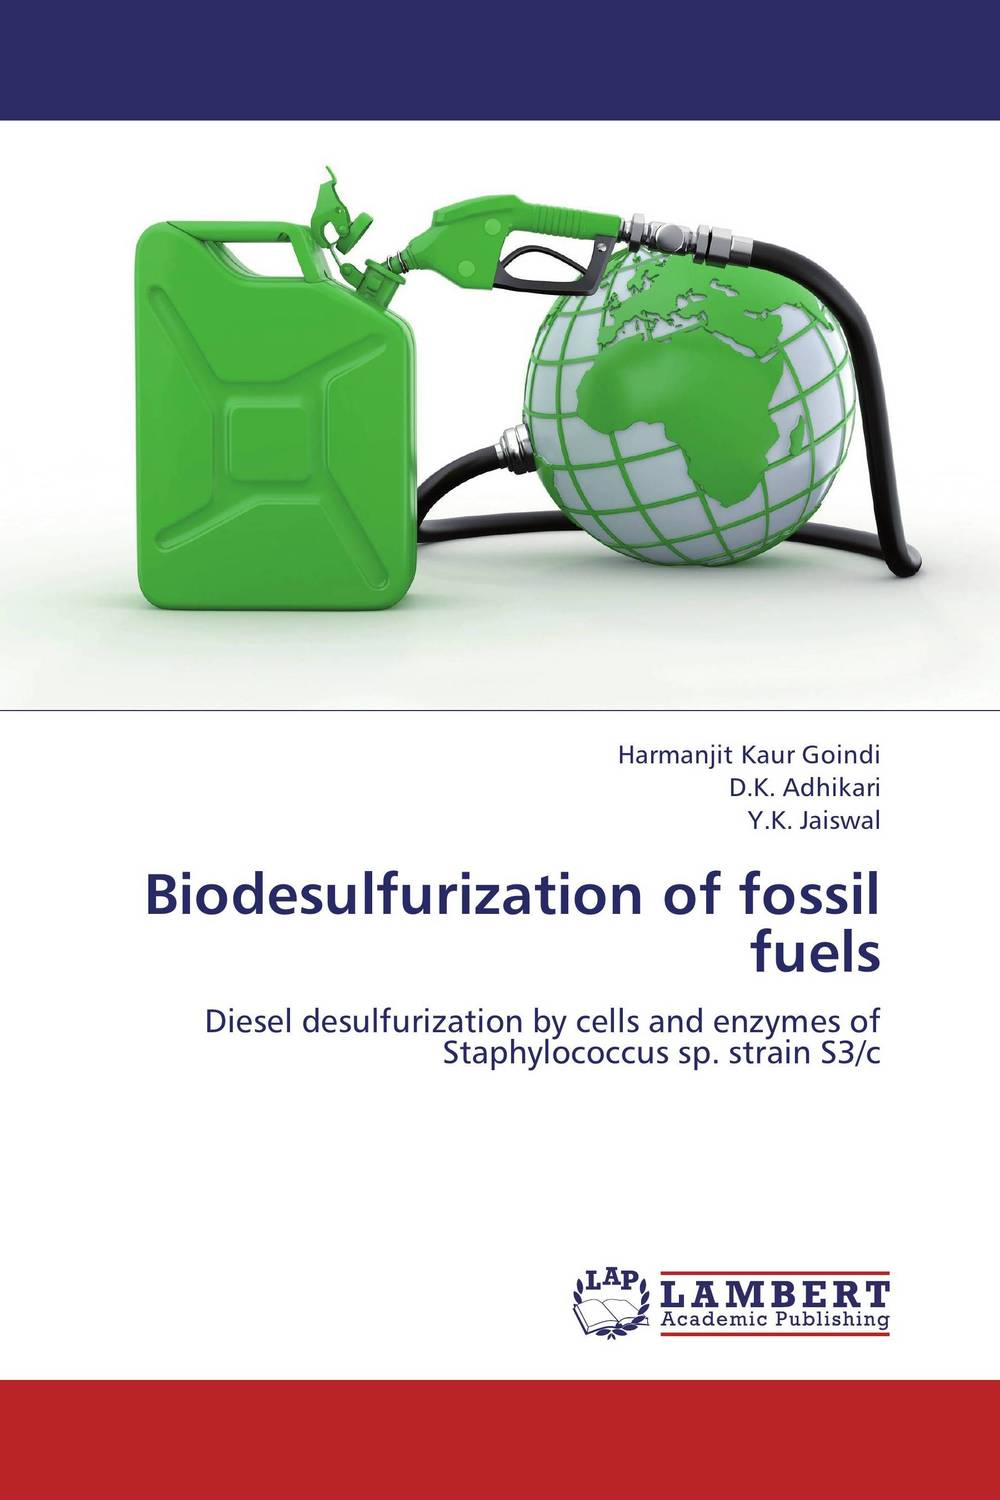 Biodesulfurization of fossil fuels nify benny and c h sujatha enrichment of sulphur compounds in the cochin estuarine system